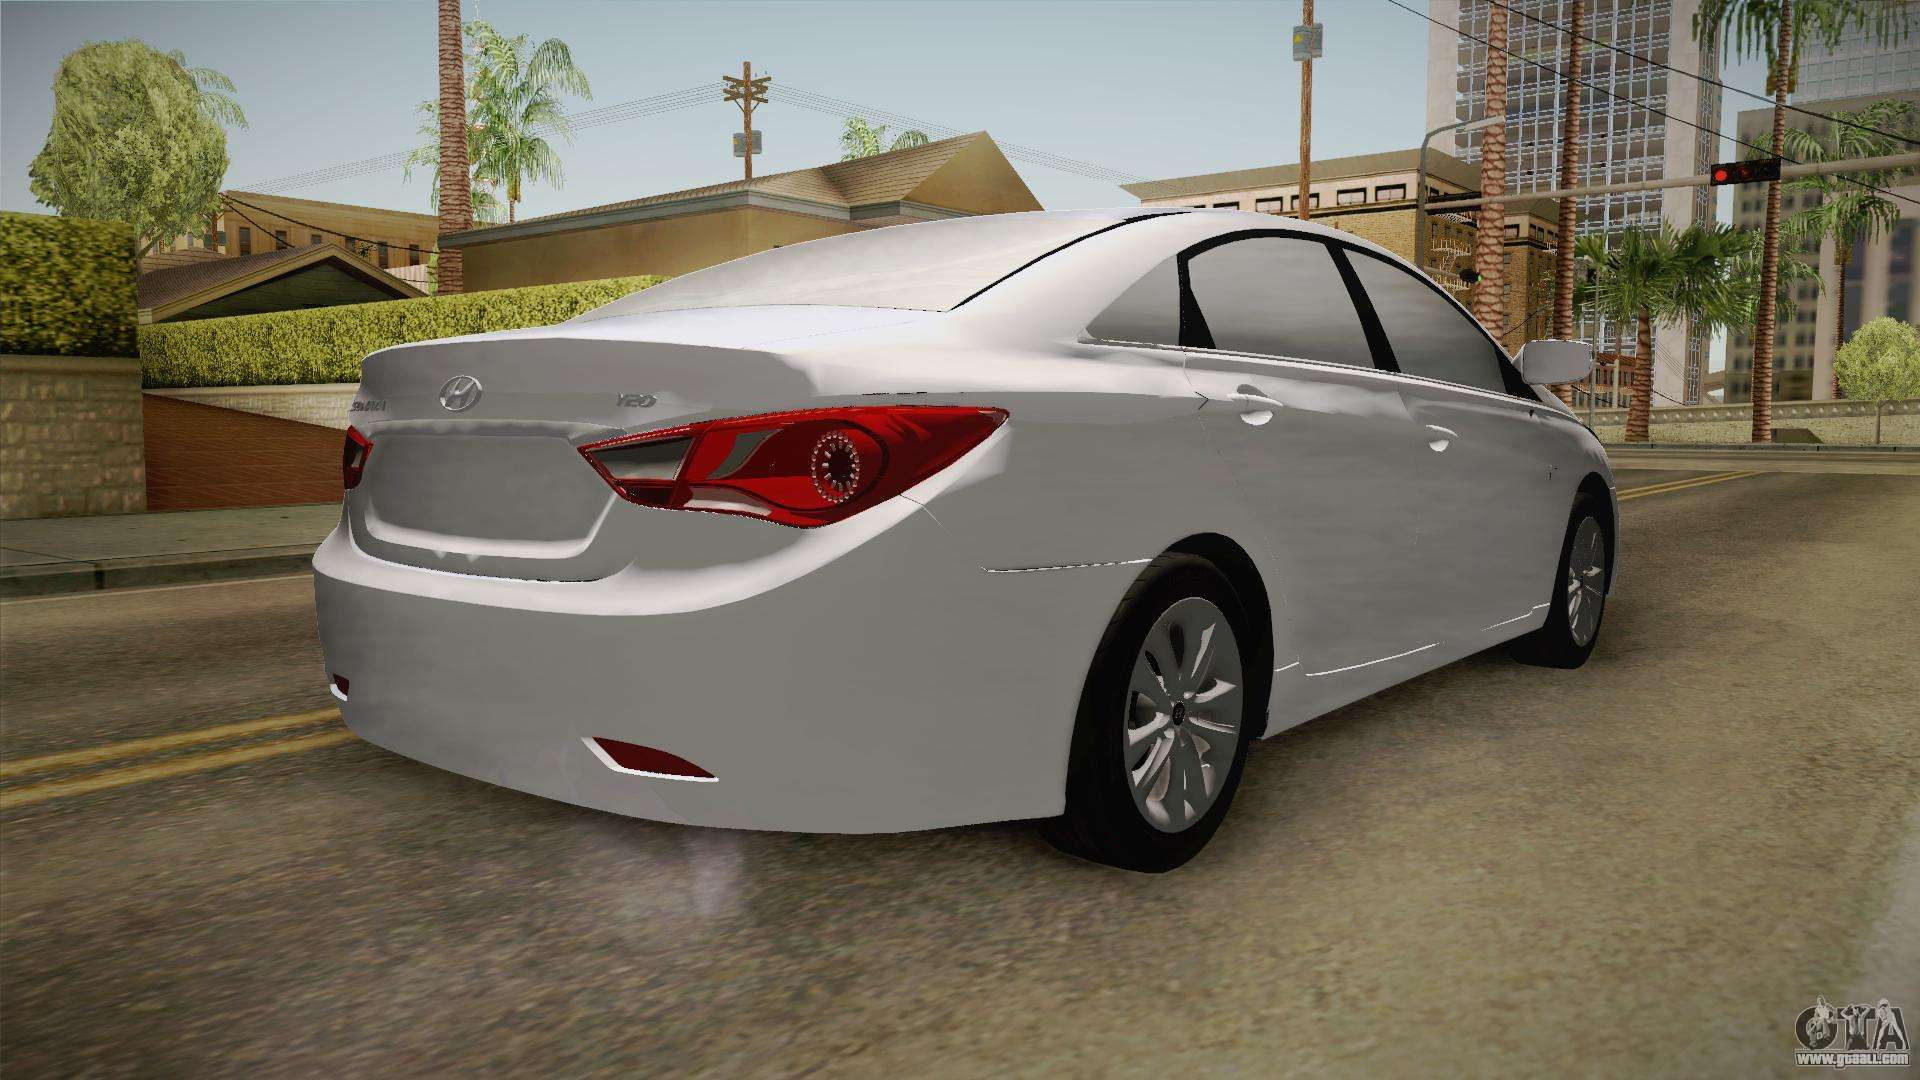 hyundai awesomeamazinggreat sonata great specifics product hybrid item